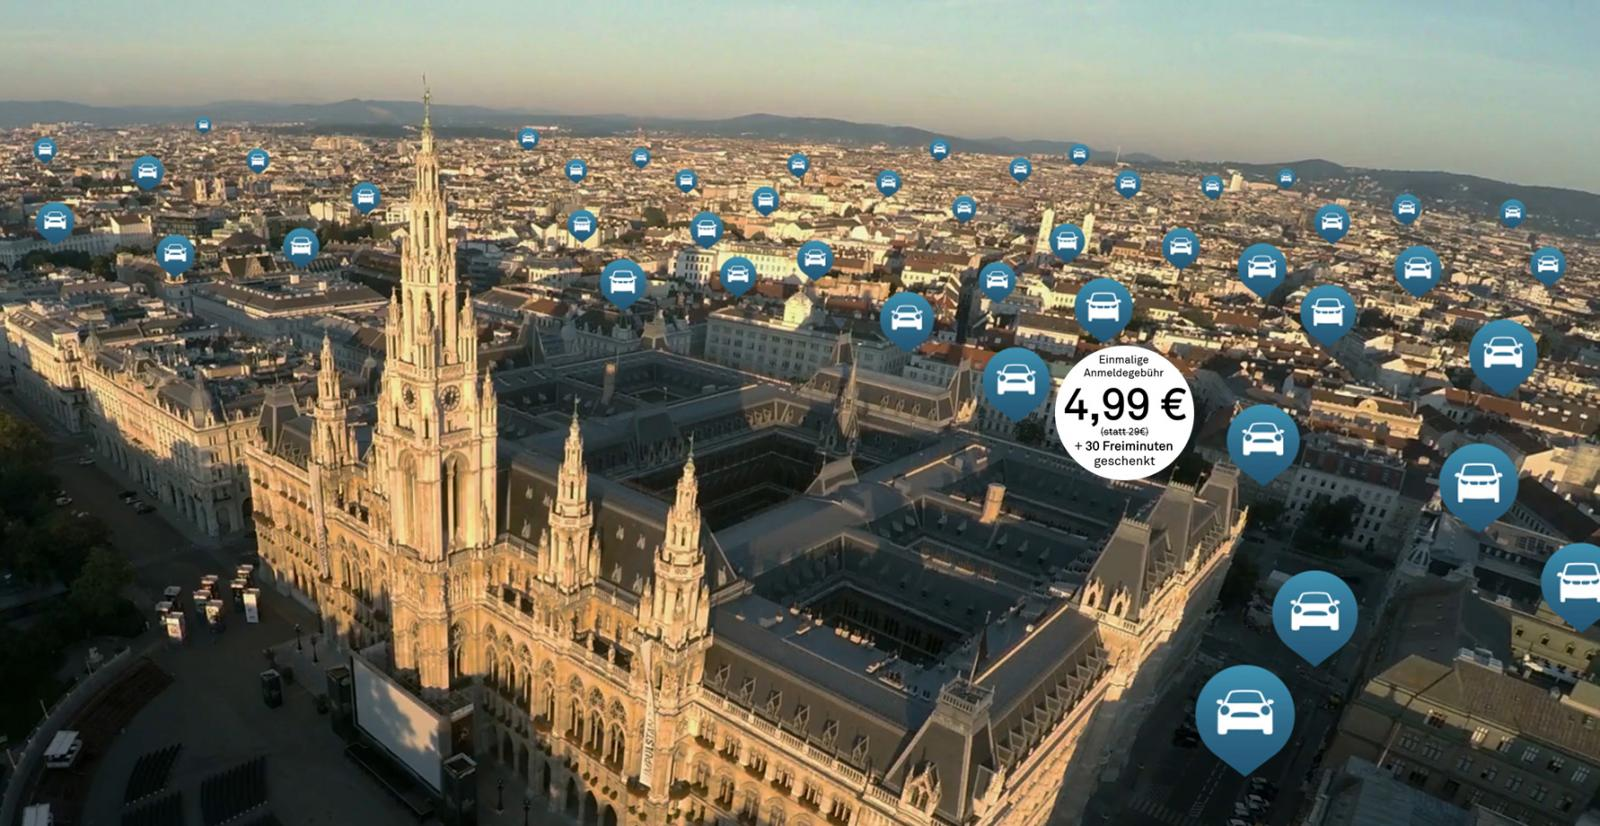 carsharing_country-home-vienna-campaign-499-30